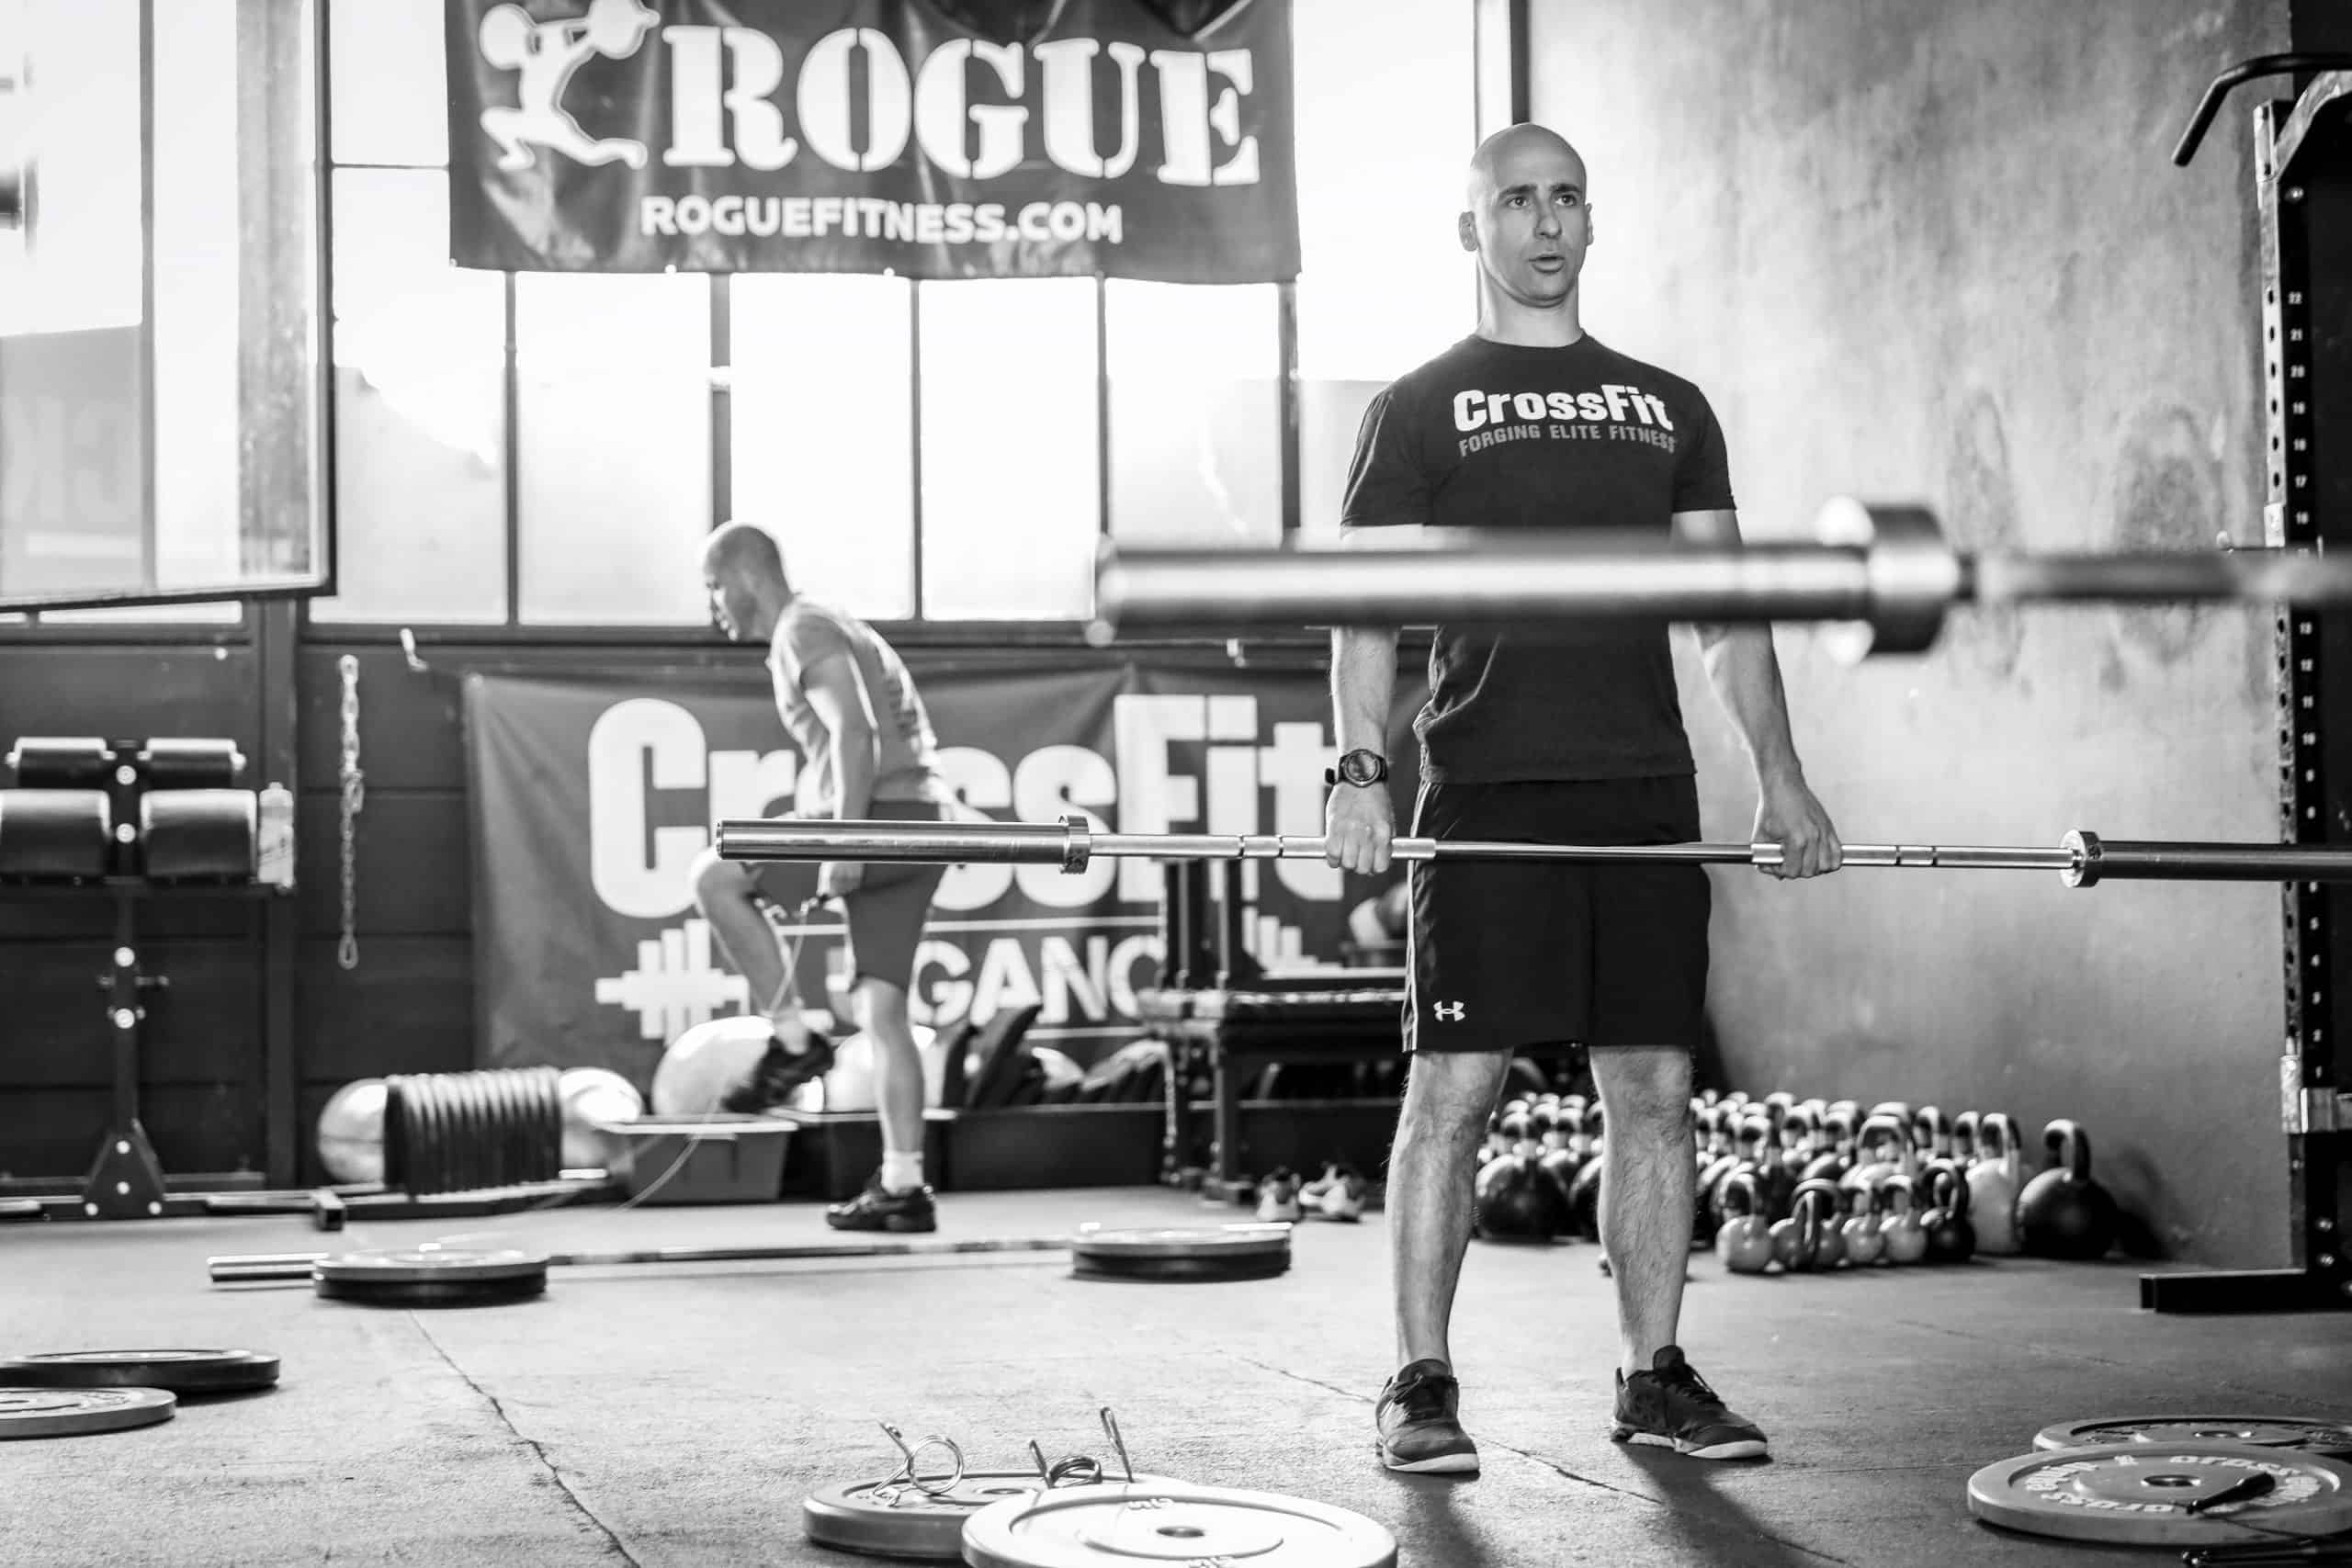 crossfit barbell training at the gym